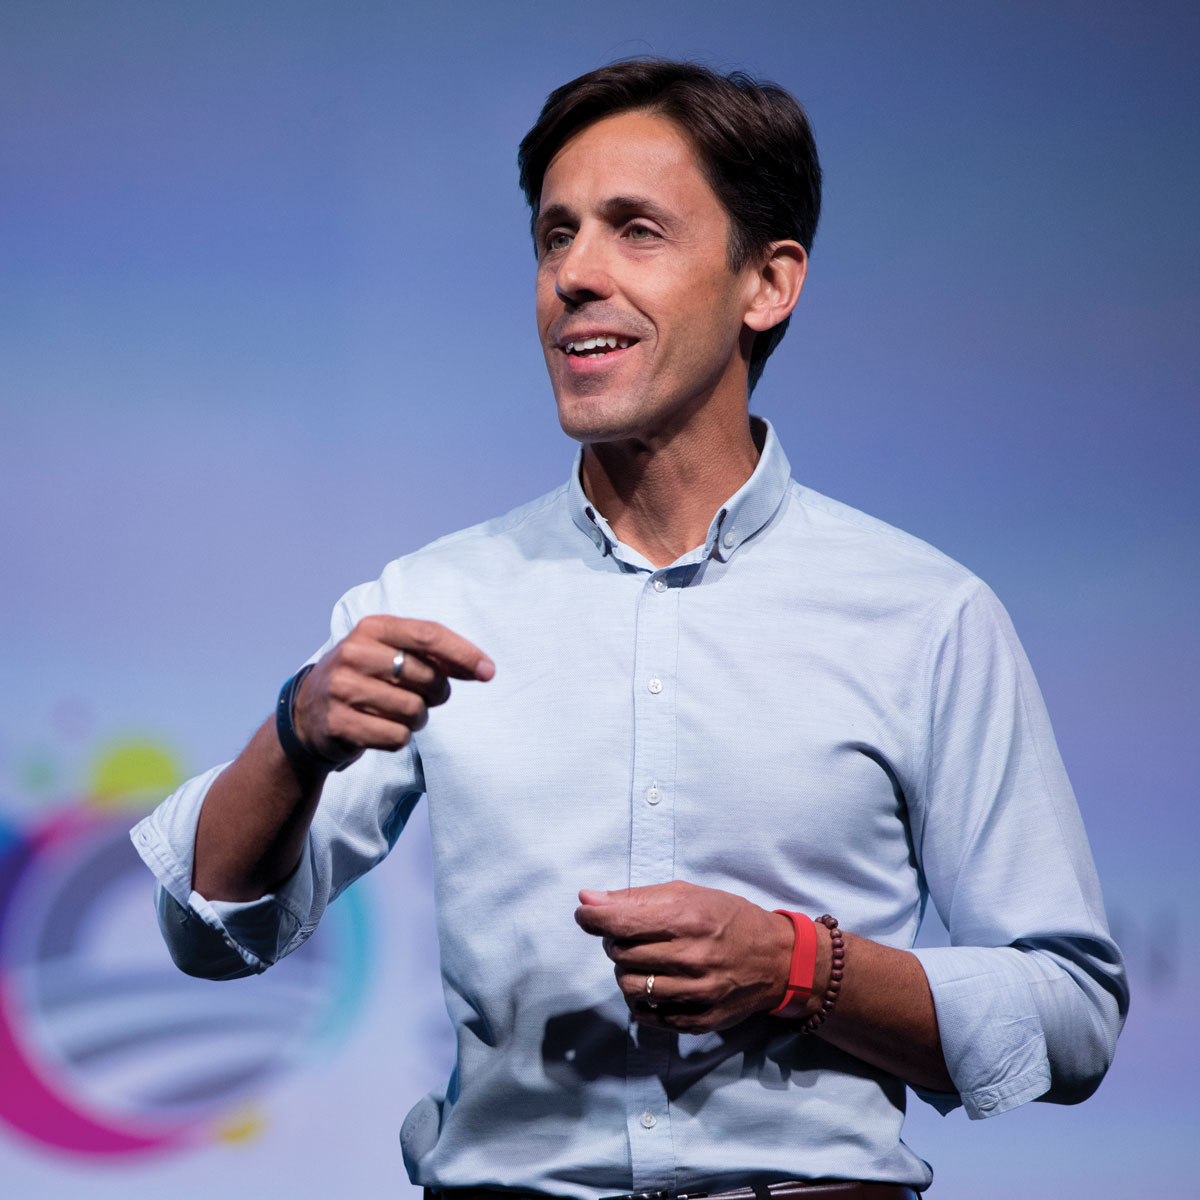 Obama Foundation CEO, David Simas, on stage at the Obama Foundation Summit.